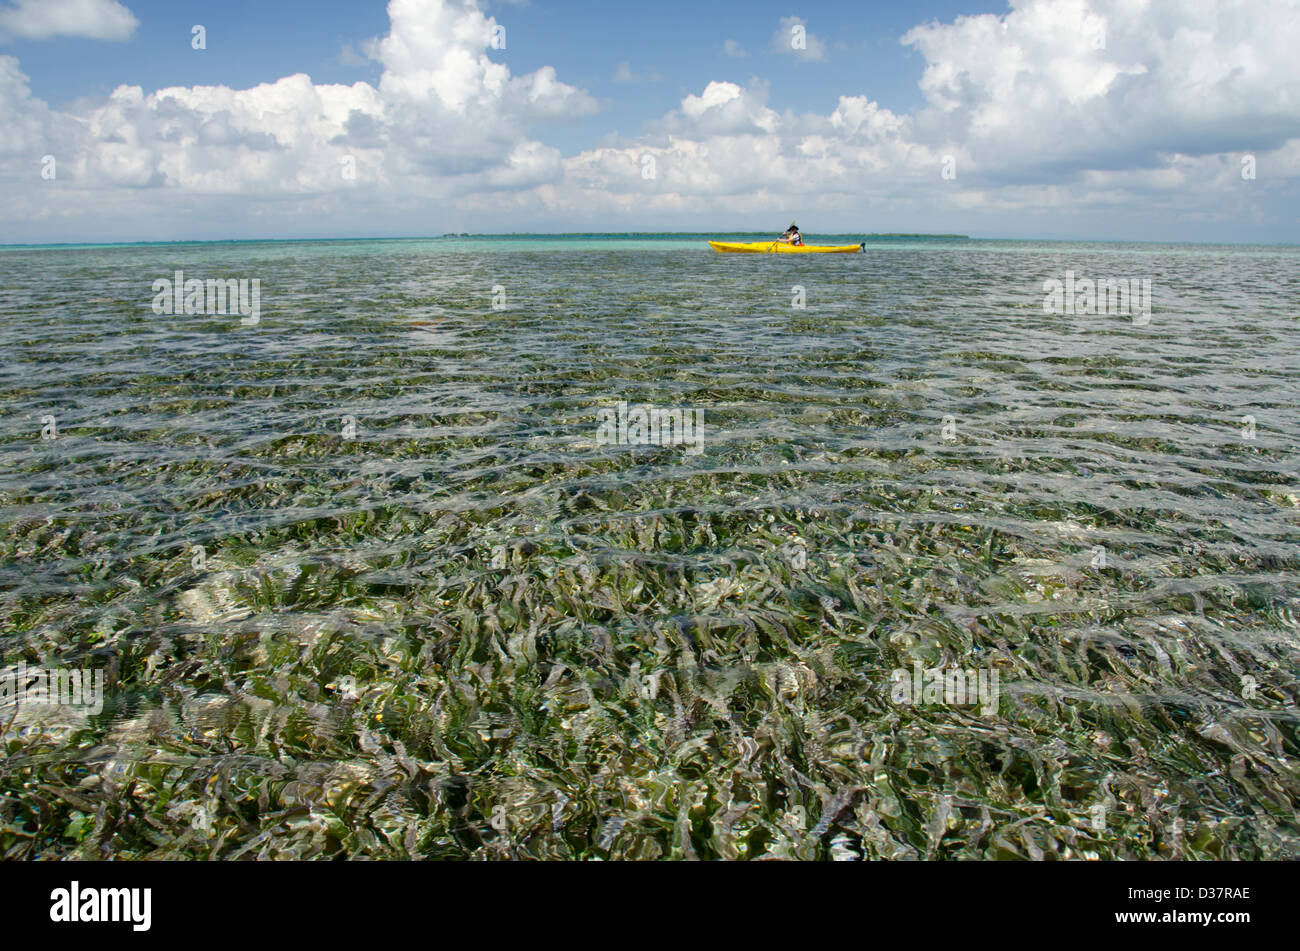 Belize, Caribbean Sea, Southwater Cay. Kayaking in the clear waters off the coast of Southwater Cay, shallow water - Stock Image